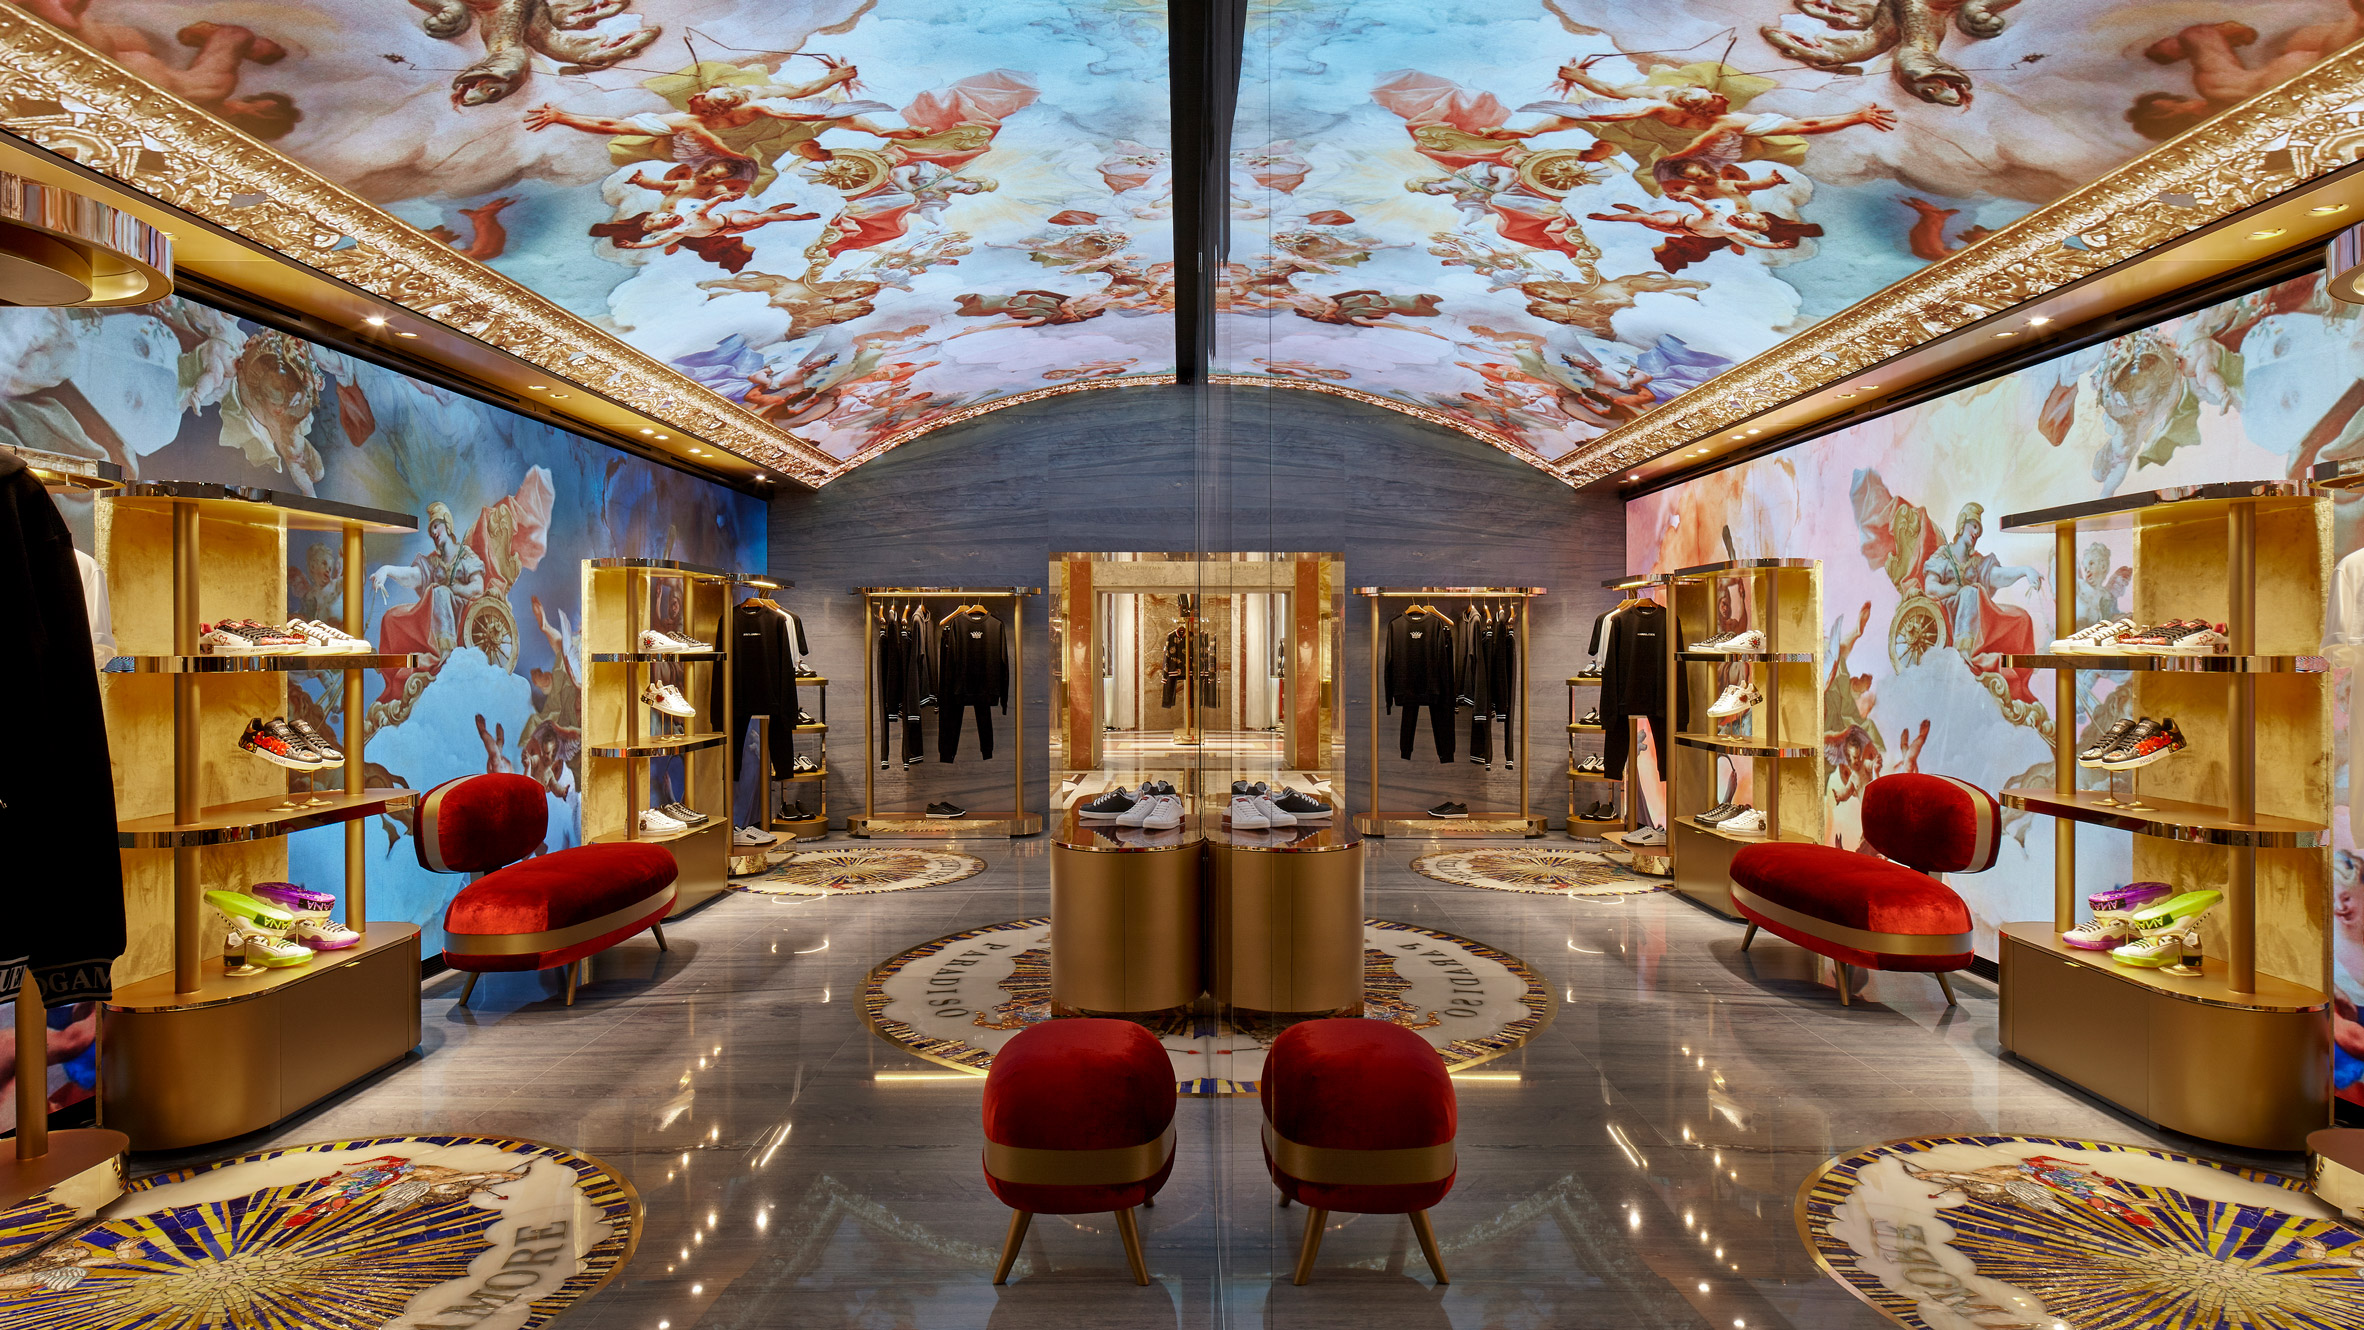 b11494c9c2a1 Dolce & Gabbana's Rome store features a digital fresco